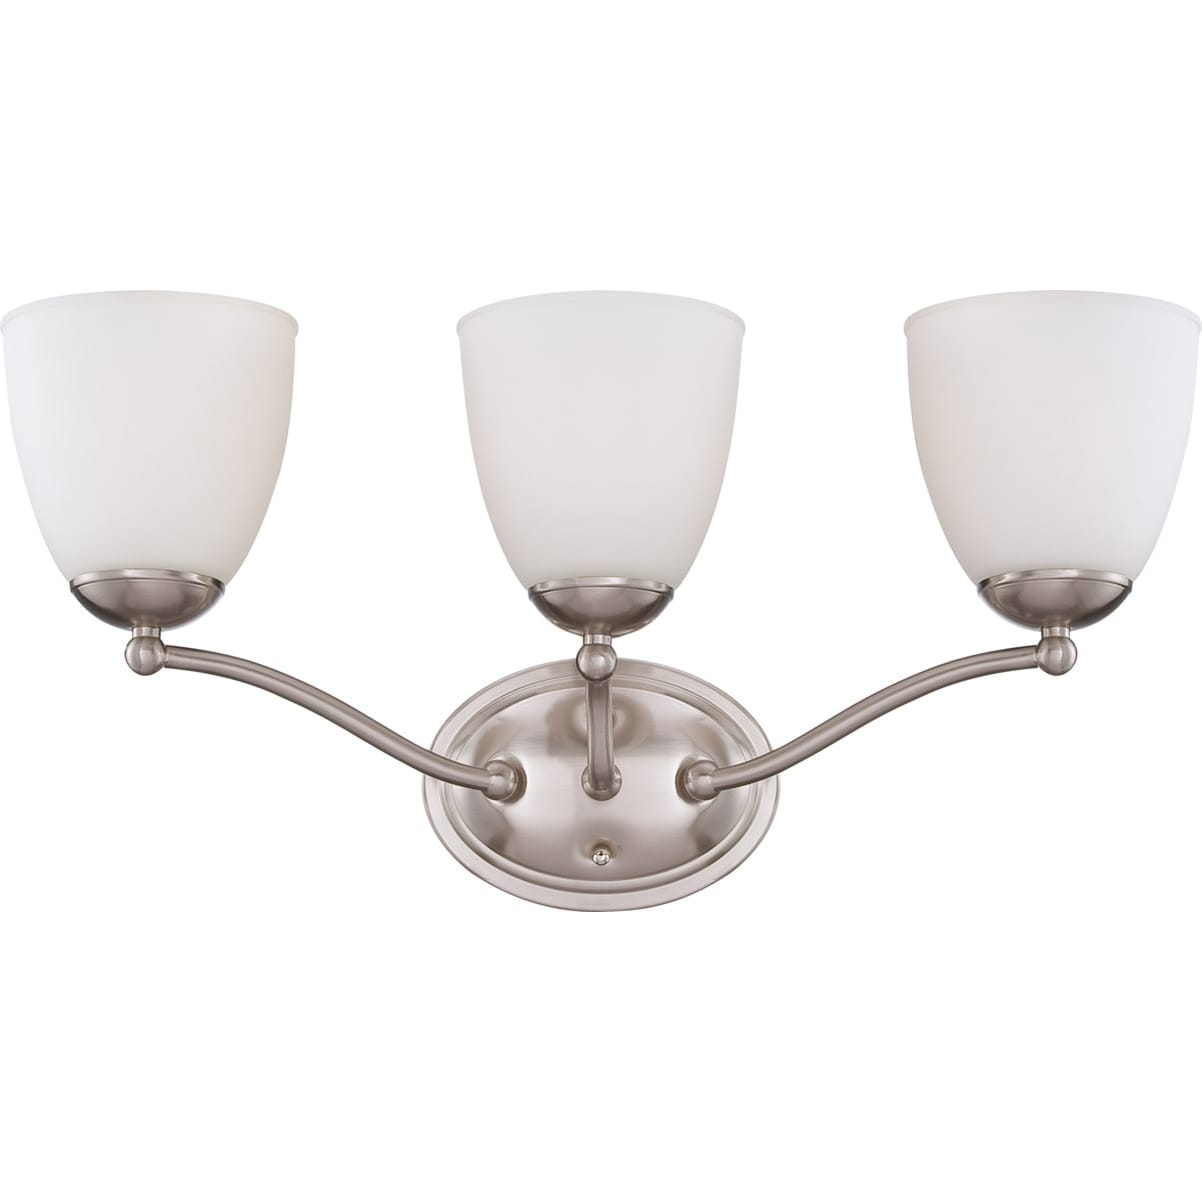 Nuvo 'Patton' 3-light Brushed Nickel Vanity Fixture